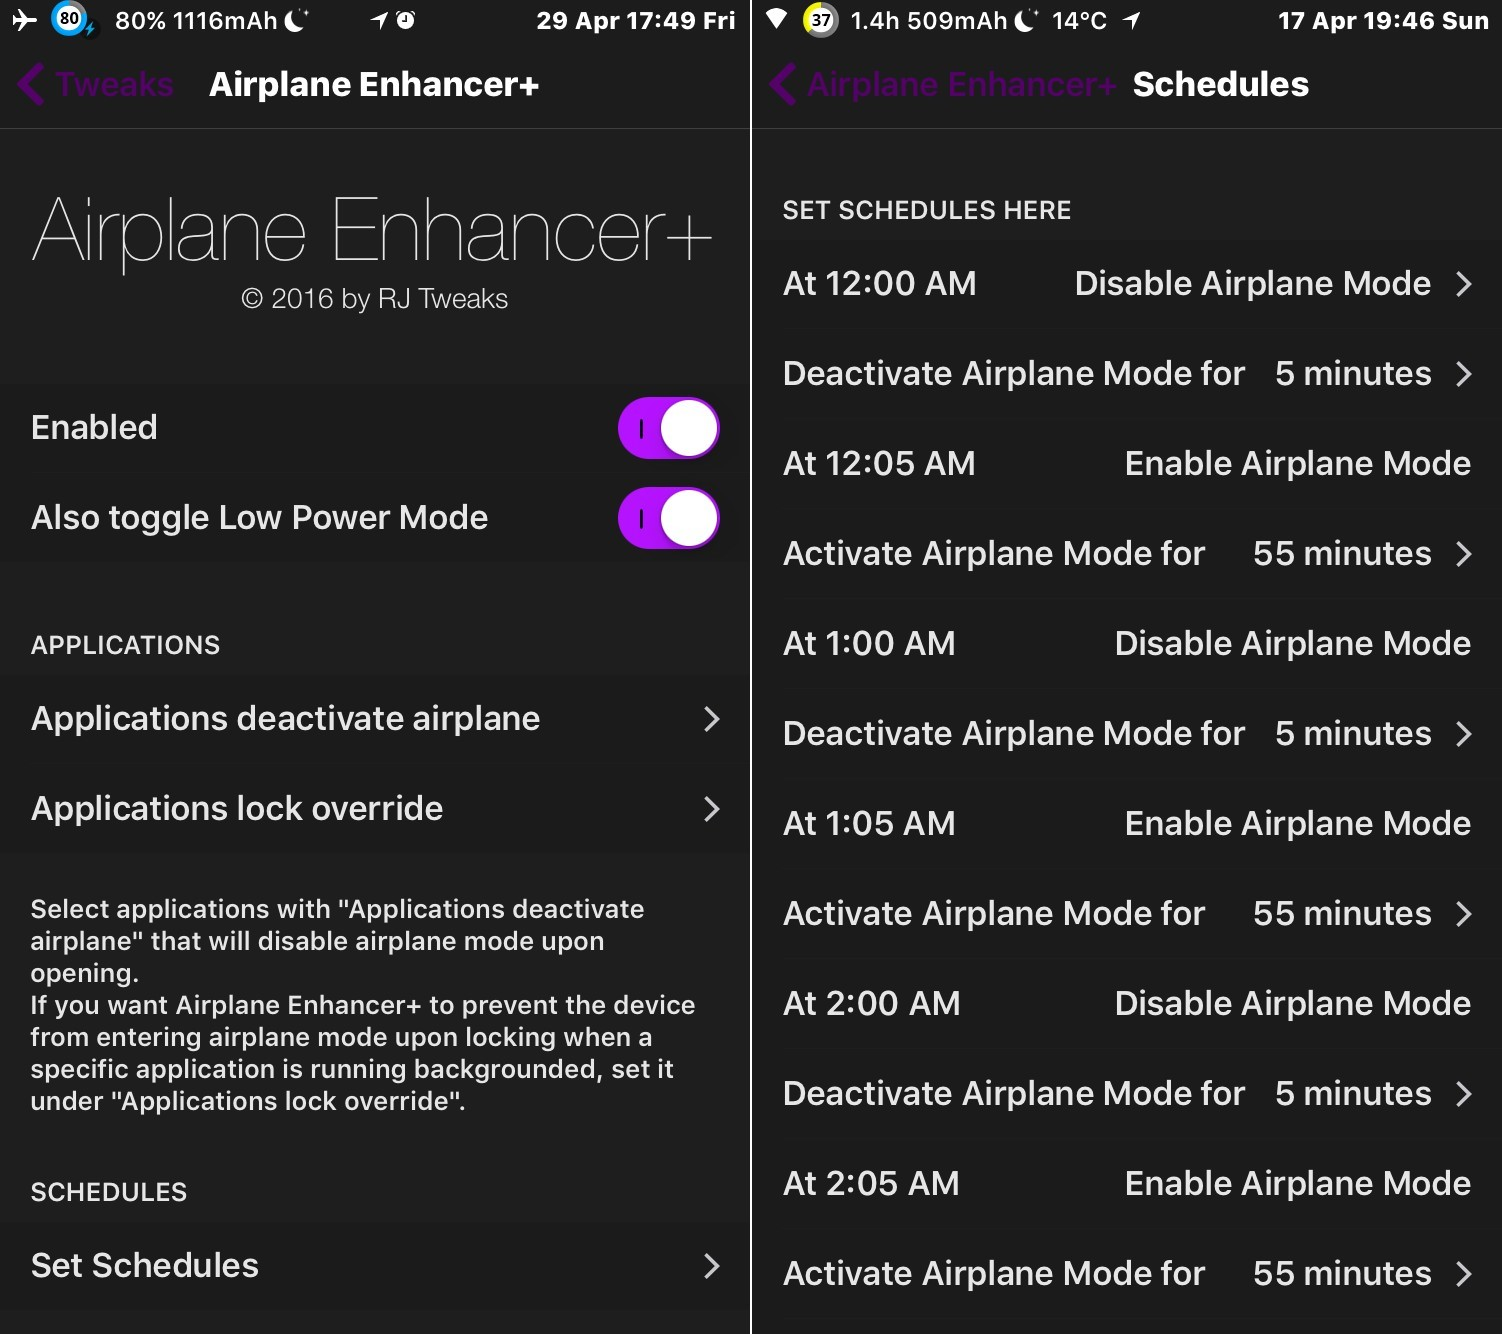 Airplane Enhancer+